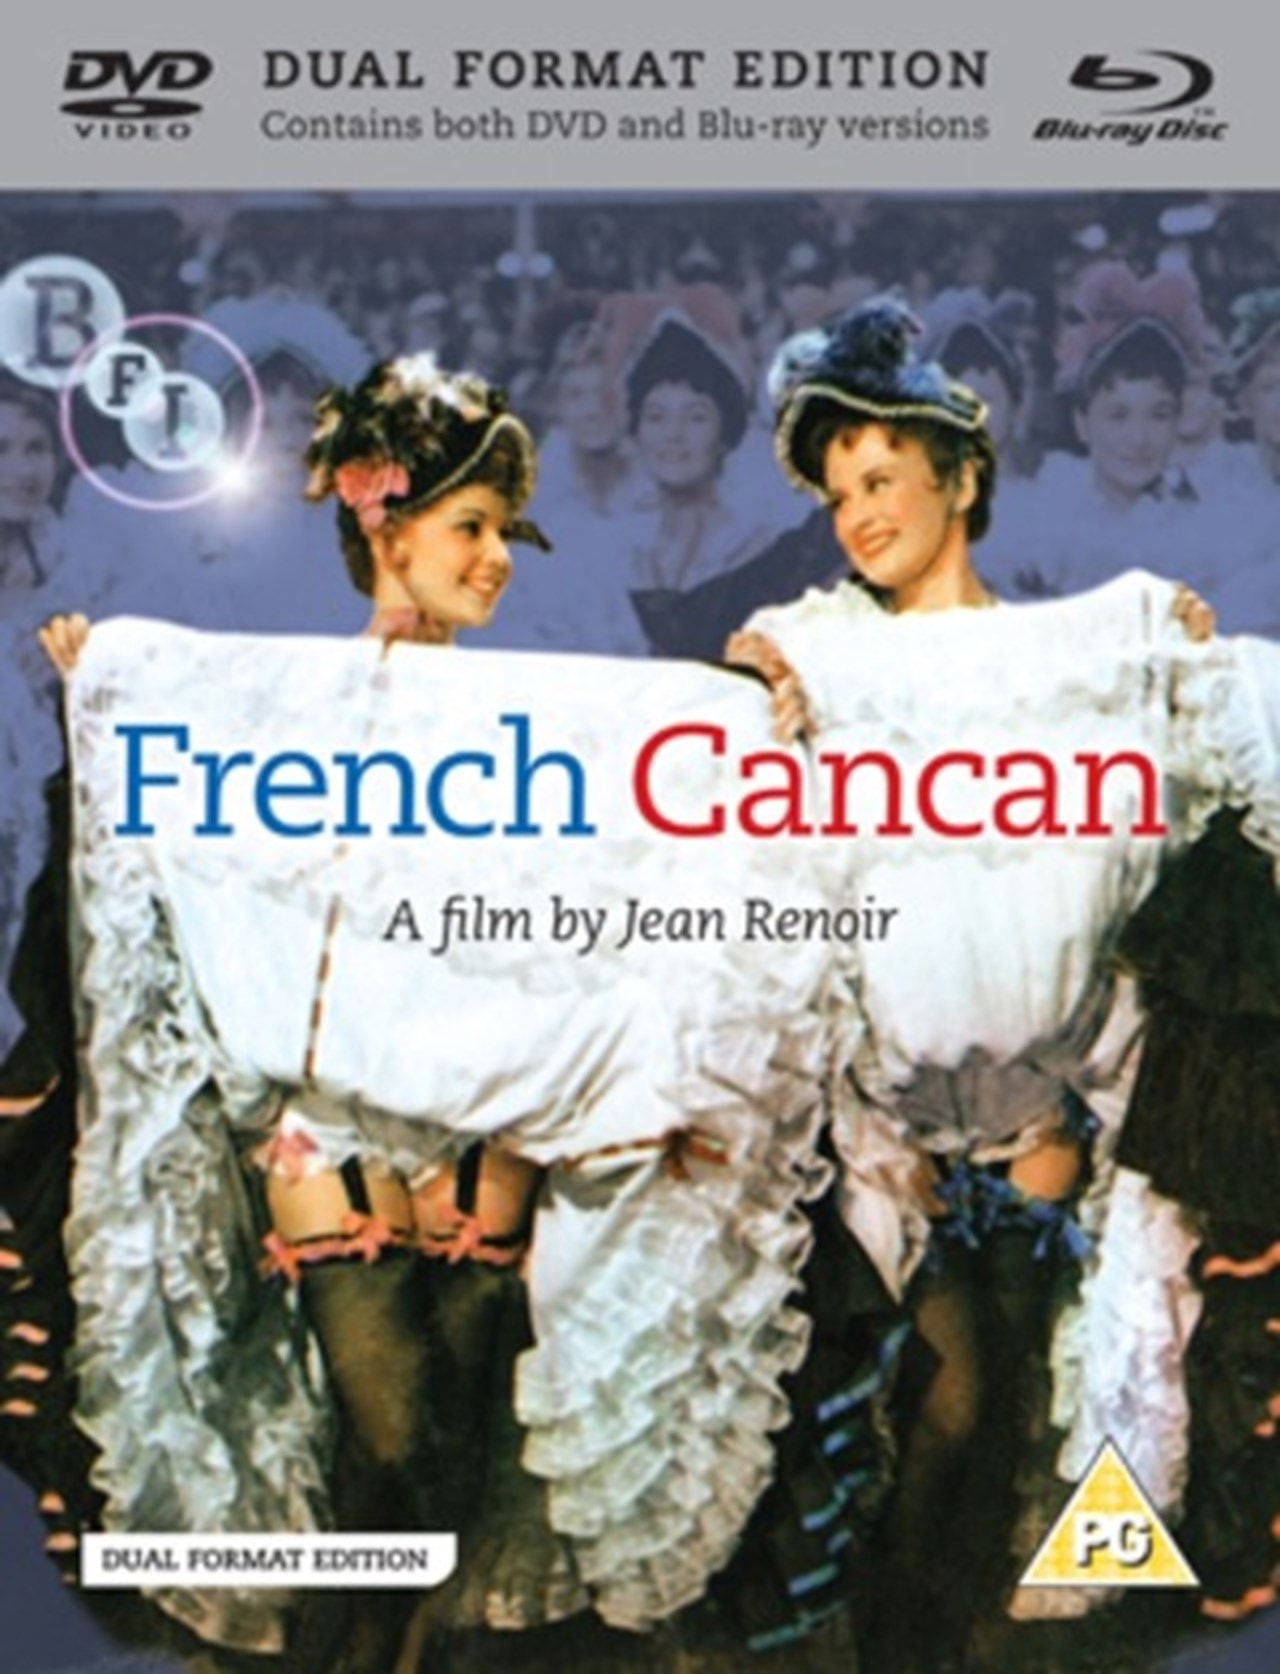 French Cancan - 1